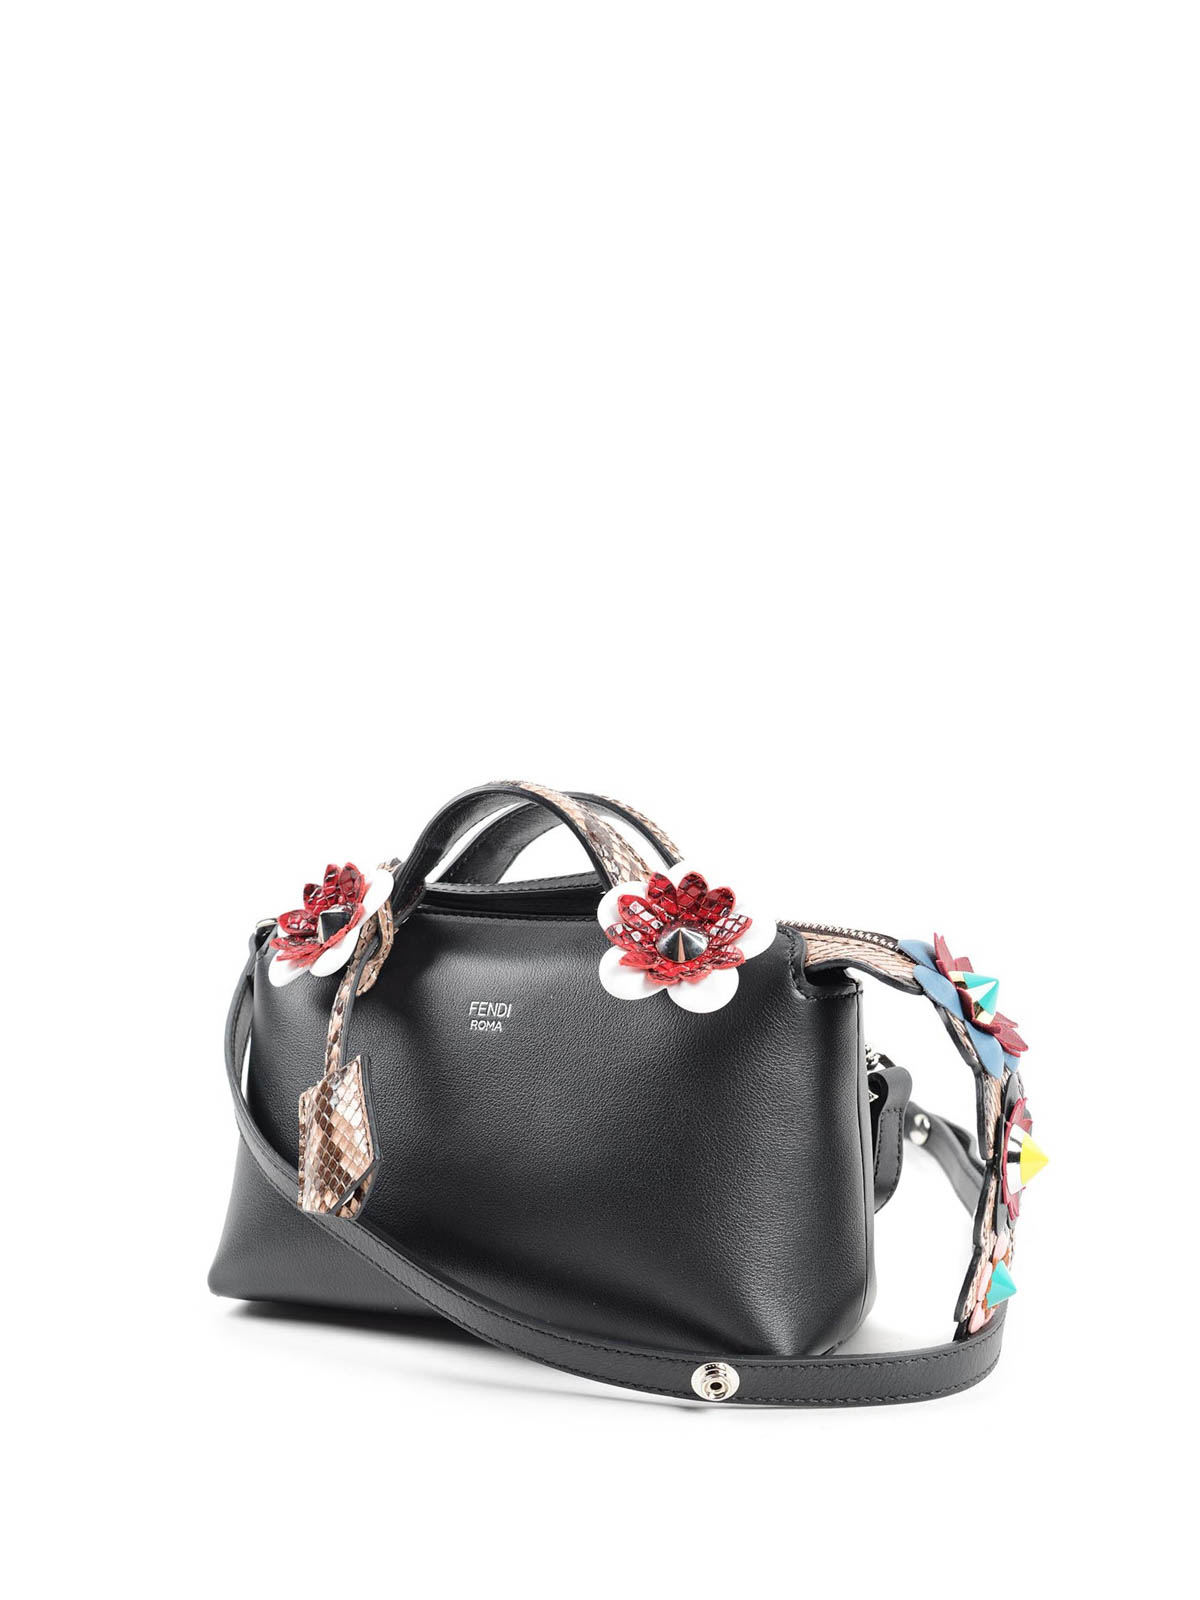 cd2c08b298 Fendi - By The Way mini bag with flowers - bowling bags - 8BL135.7VX 2LU